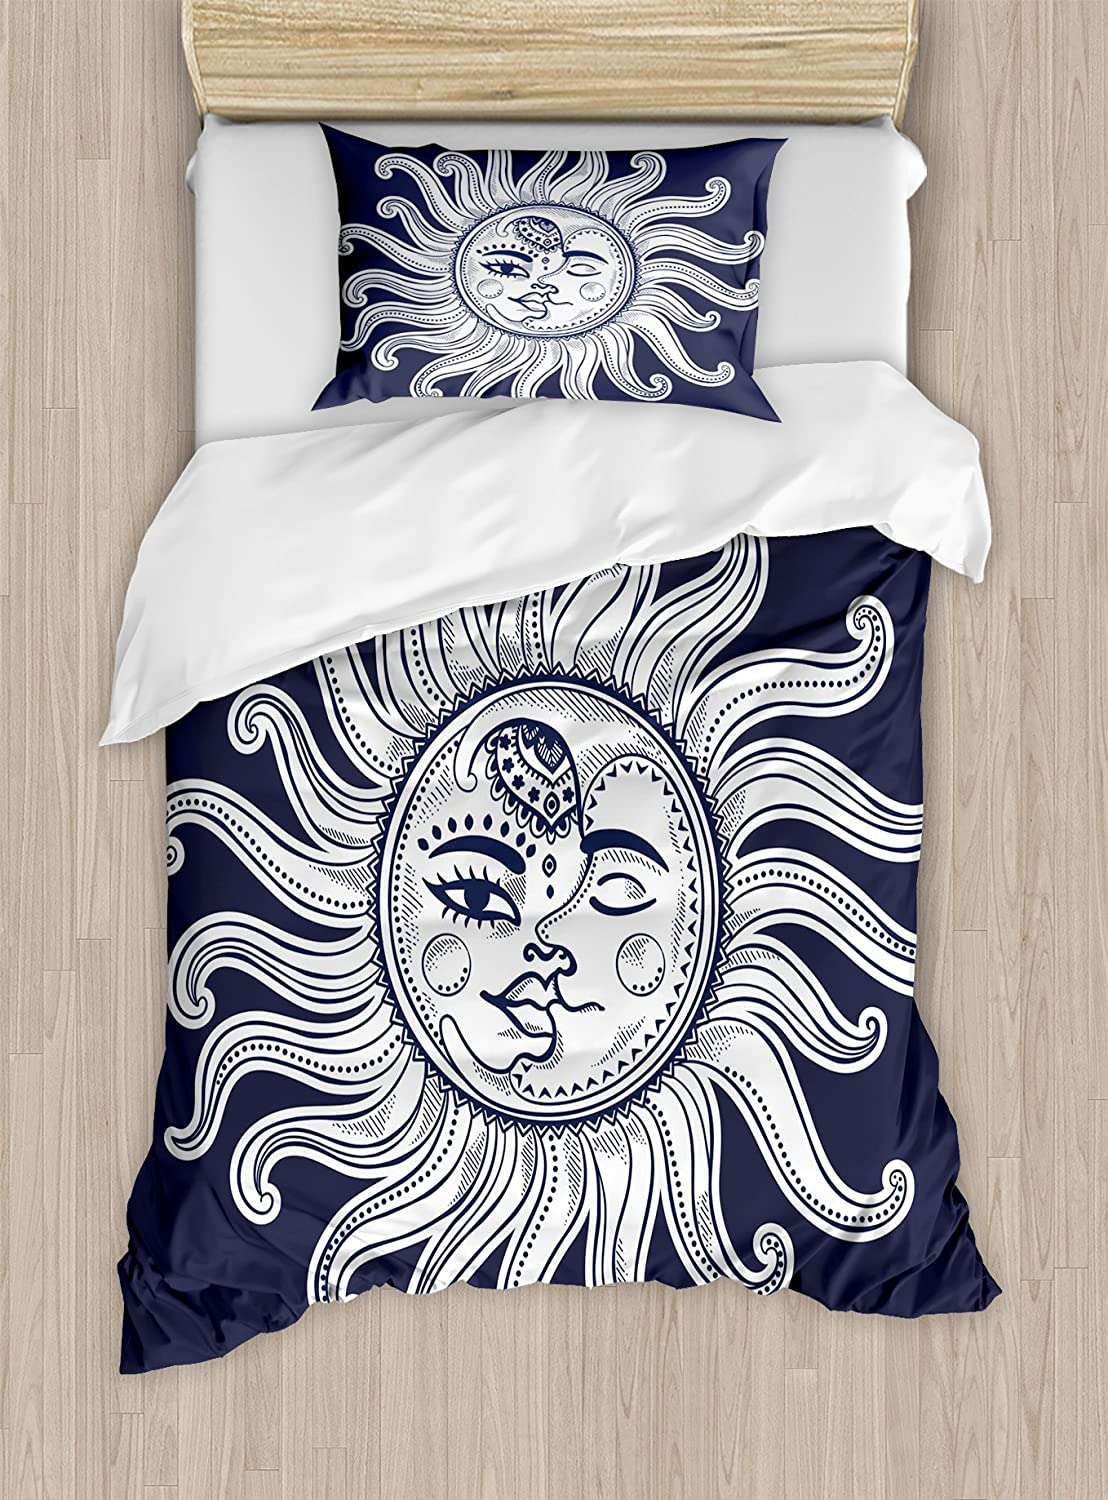 Ambesonne Sun and Moon Duvet Cover Set, Love and Romance in Sky Eclipse at Midnight Themed Folk Elements Vintage, Decorative 2 Piece Bedding Set with 1 Pillow Sham, Twin Size, Blue White